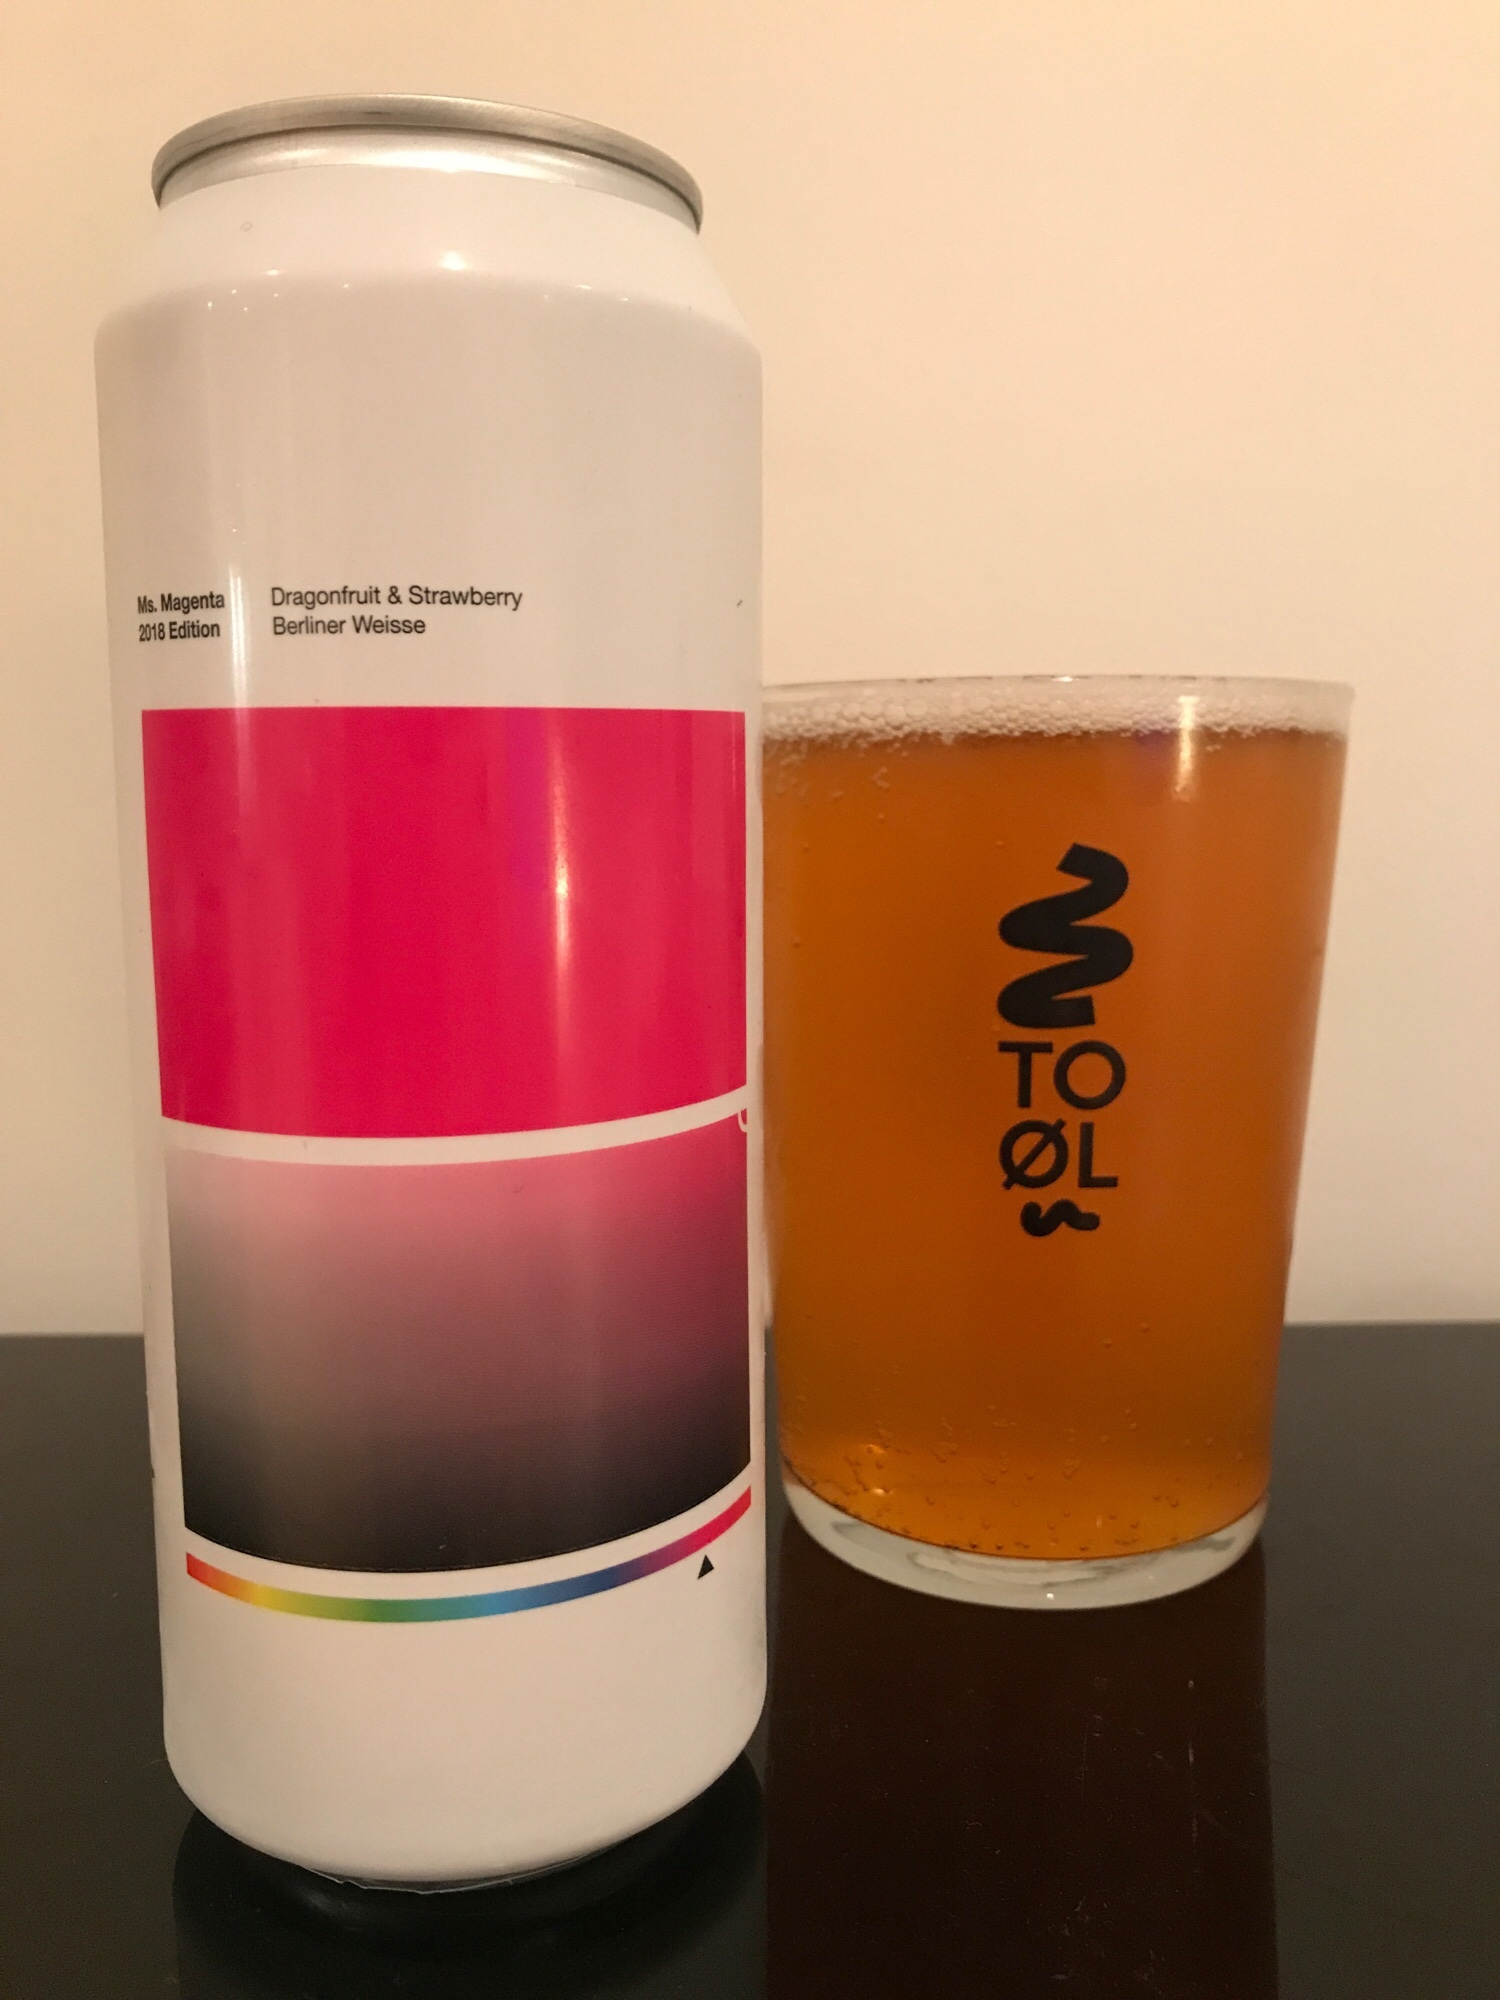 Ms. Magenta // Dragonfruit & Strawberry Berliner Weisse 4.5% - Expectations: I once went on a kid's rollercoaster ride as a teenager that was shaped like a dragon. It was alarmingly quick for a child's ride. So much so, it made me break out into an uncontrollable laughing fit at the sheer ridiculousness of the juxtaposition of a kid's rollercoaster being THAT fast. Anyway, I'm hoping this beer made with dragonfruit stirs up similar emotions. Giggling like a teenage boy at this delightful sounding beer. I'm all about a fruity, tart berliner weisse so am well up for this. Failing that, I'll have to go back to Alton Towers.Reality: Most berliner weisse beers tend to have a pretty unpleasant smell. Not as bad as some sours but it has that slight sulphur smell to it. This beer, however, has zero aroma. Maybe it being straight out of the fridge has resulted in the aroma being dulled but it's just vanished. I was a little perturbed and worried but I needn't have been because this is very, very good.I'm not really sure what a dragonfruit tastes like but I am getting alllll the strawberry here. It's initially a bit tart but then the finish is lovely and sweet and I've just noticed I've chinned half the can in double quick time. This hasn't stirred up the same reaction as the aforementioned rollercoaster but it's certainly put a smile on my face.